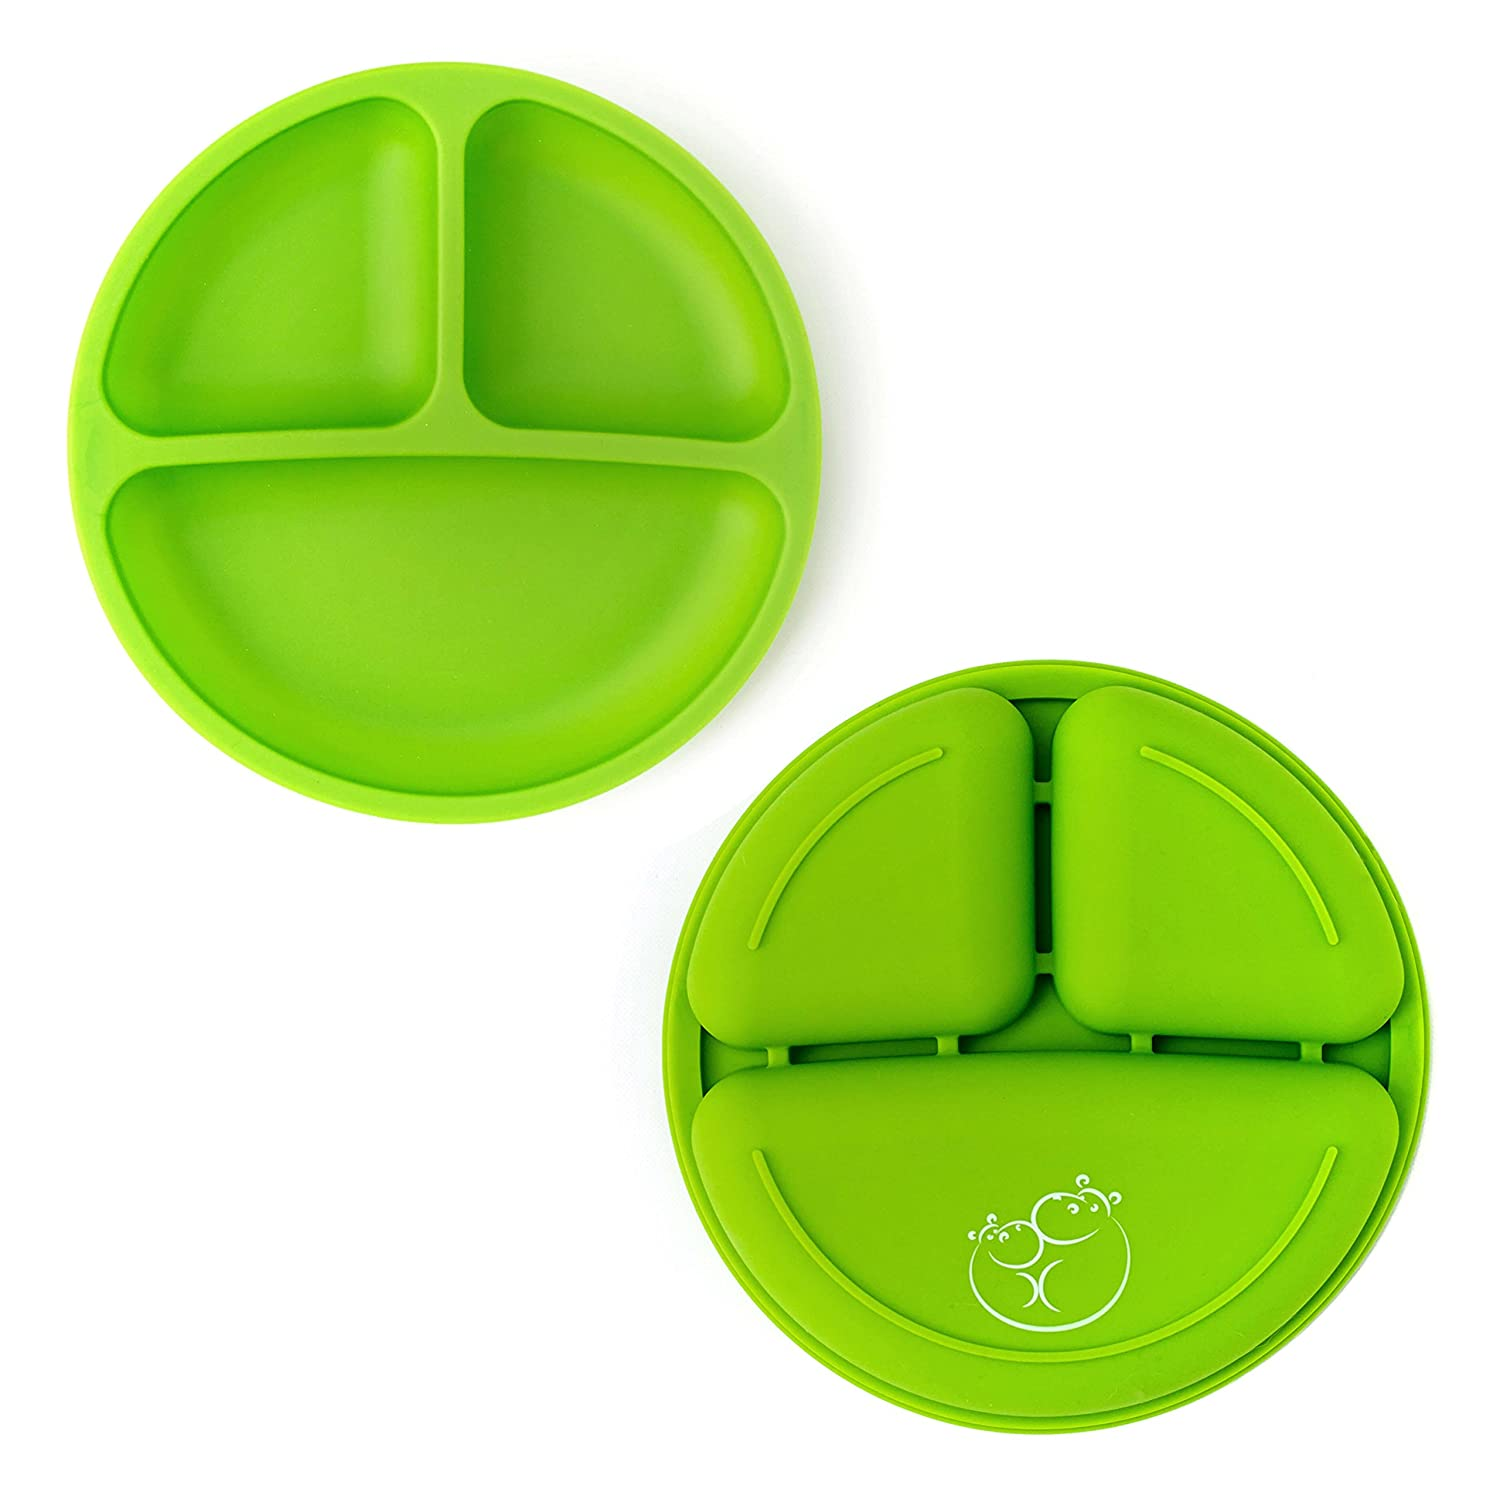 Green Set of 3 Microwave Safe Dishes Blue Silicone Plate with Dividers for Baby Toddler Plates Kids /& Toddlers Gray